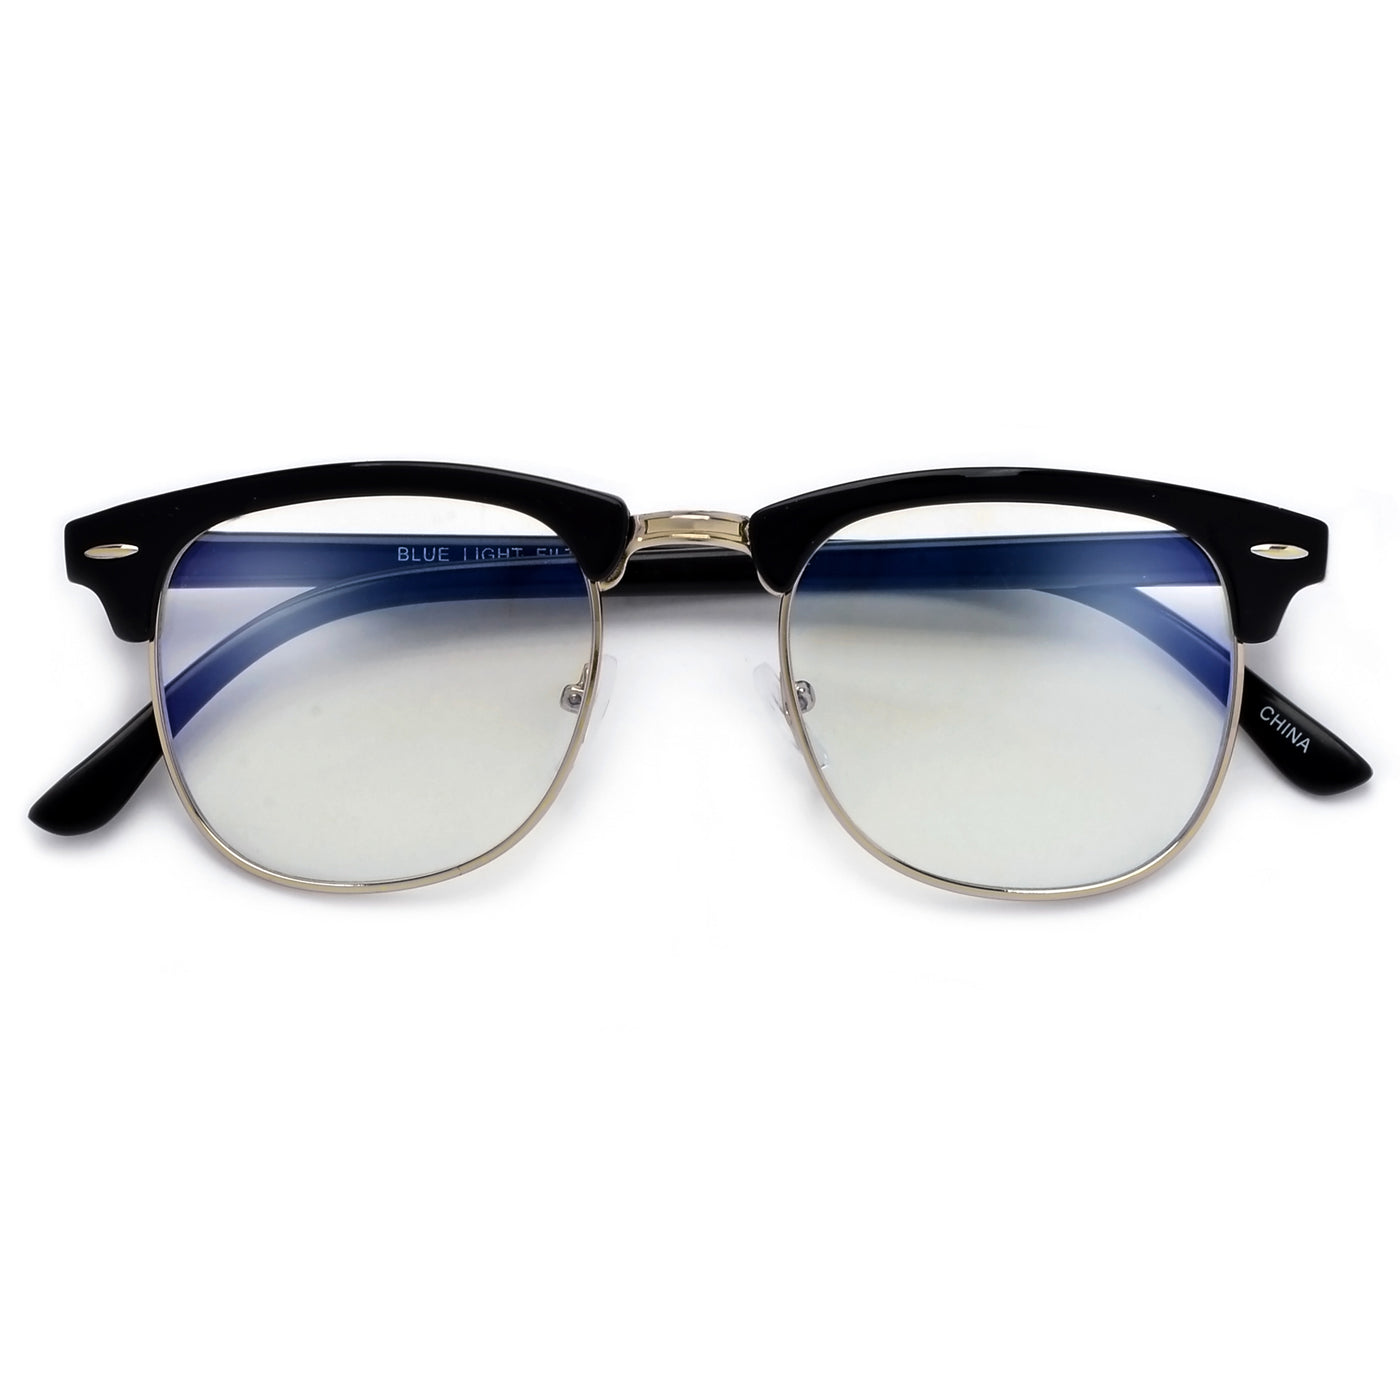 6c5f9004908 Retro Inspired Half Frame Semi-Rimless Charcoal Gray Clear Lens ...